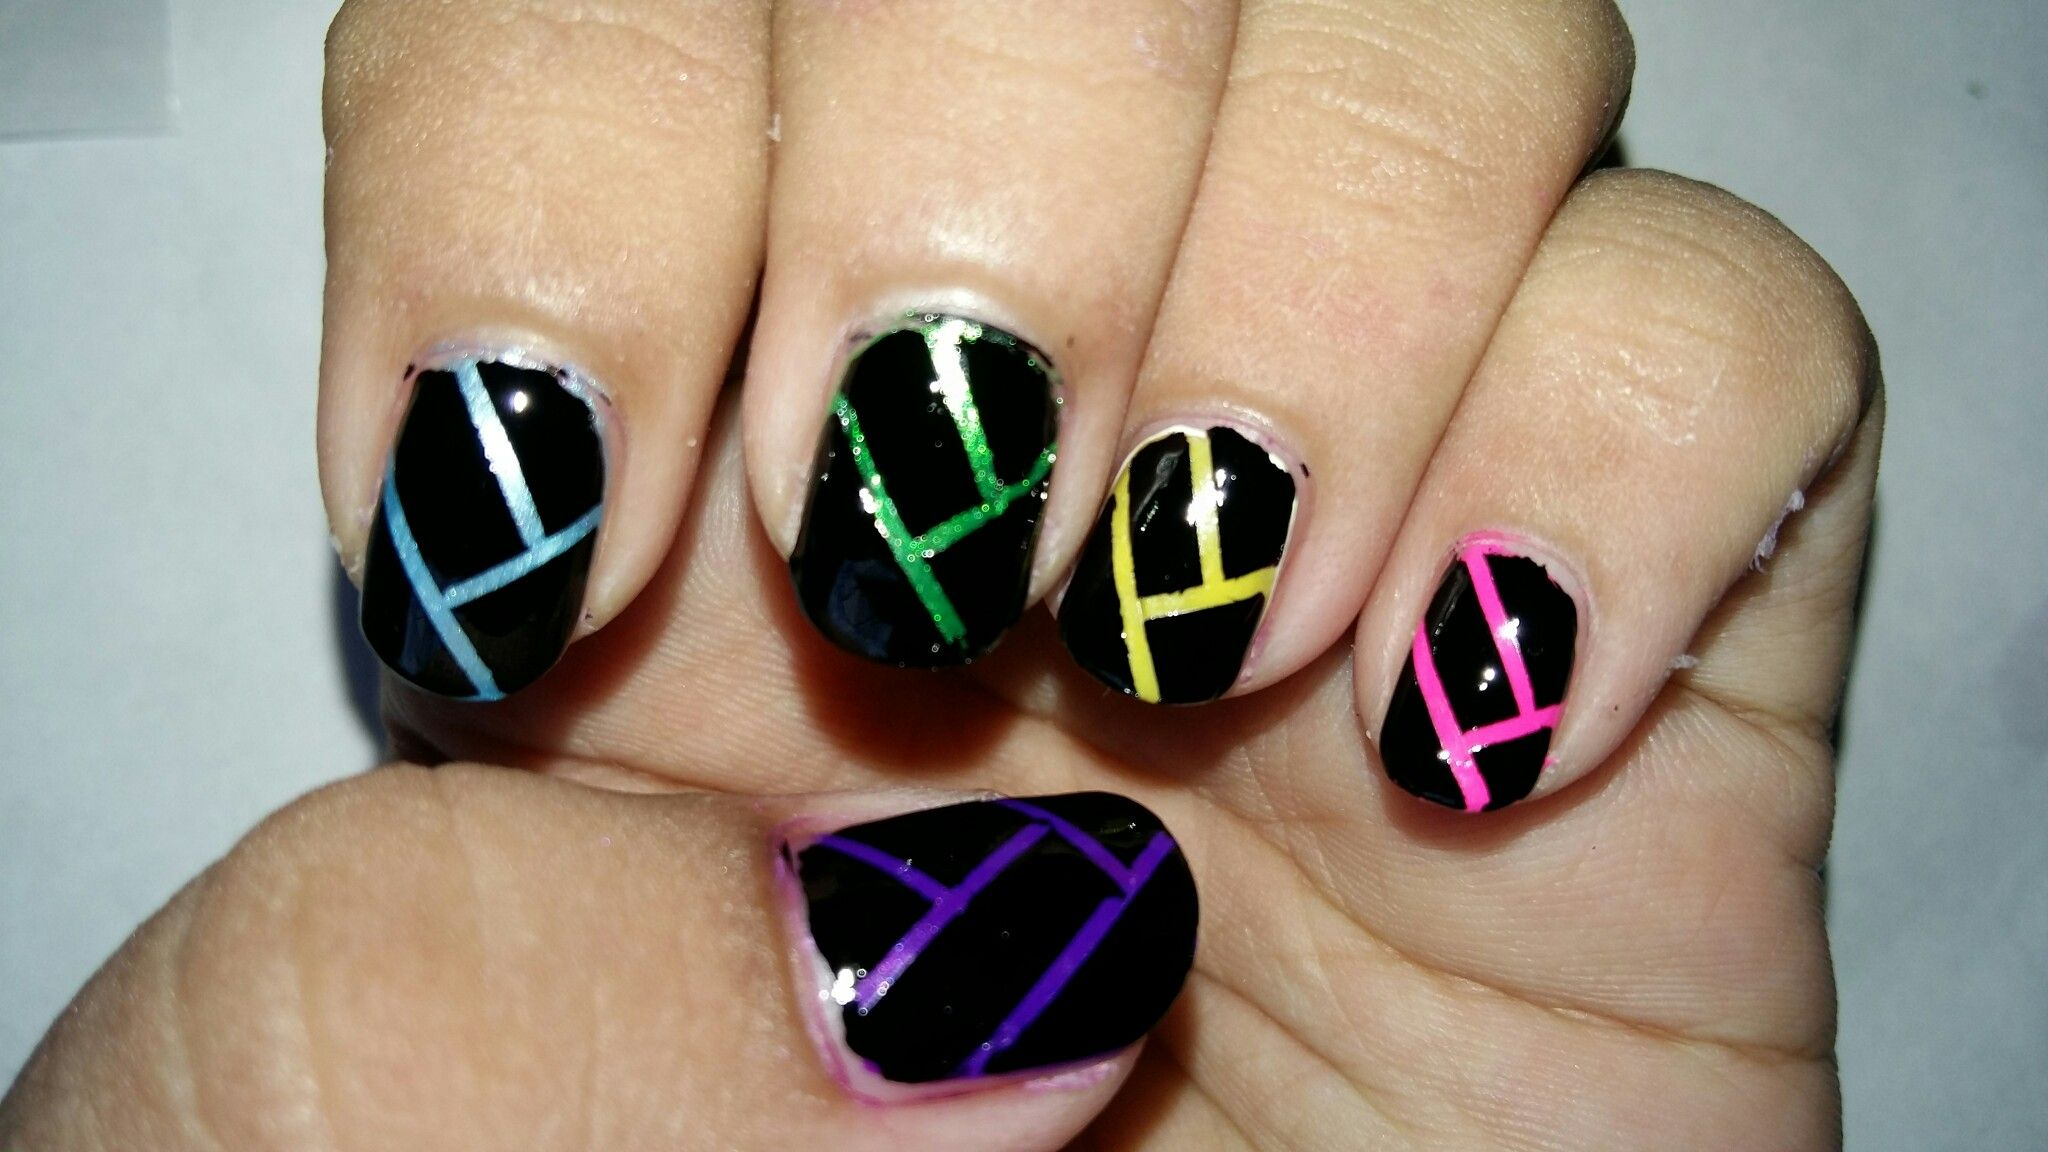 Pin by Aarya on Stuff by me | Pinterest | Tape nail art, Tape nails ...